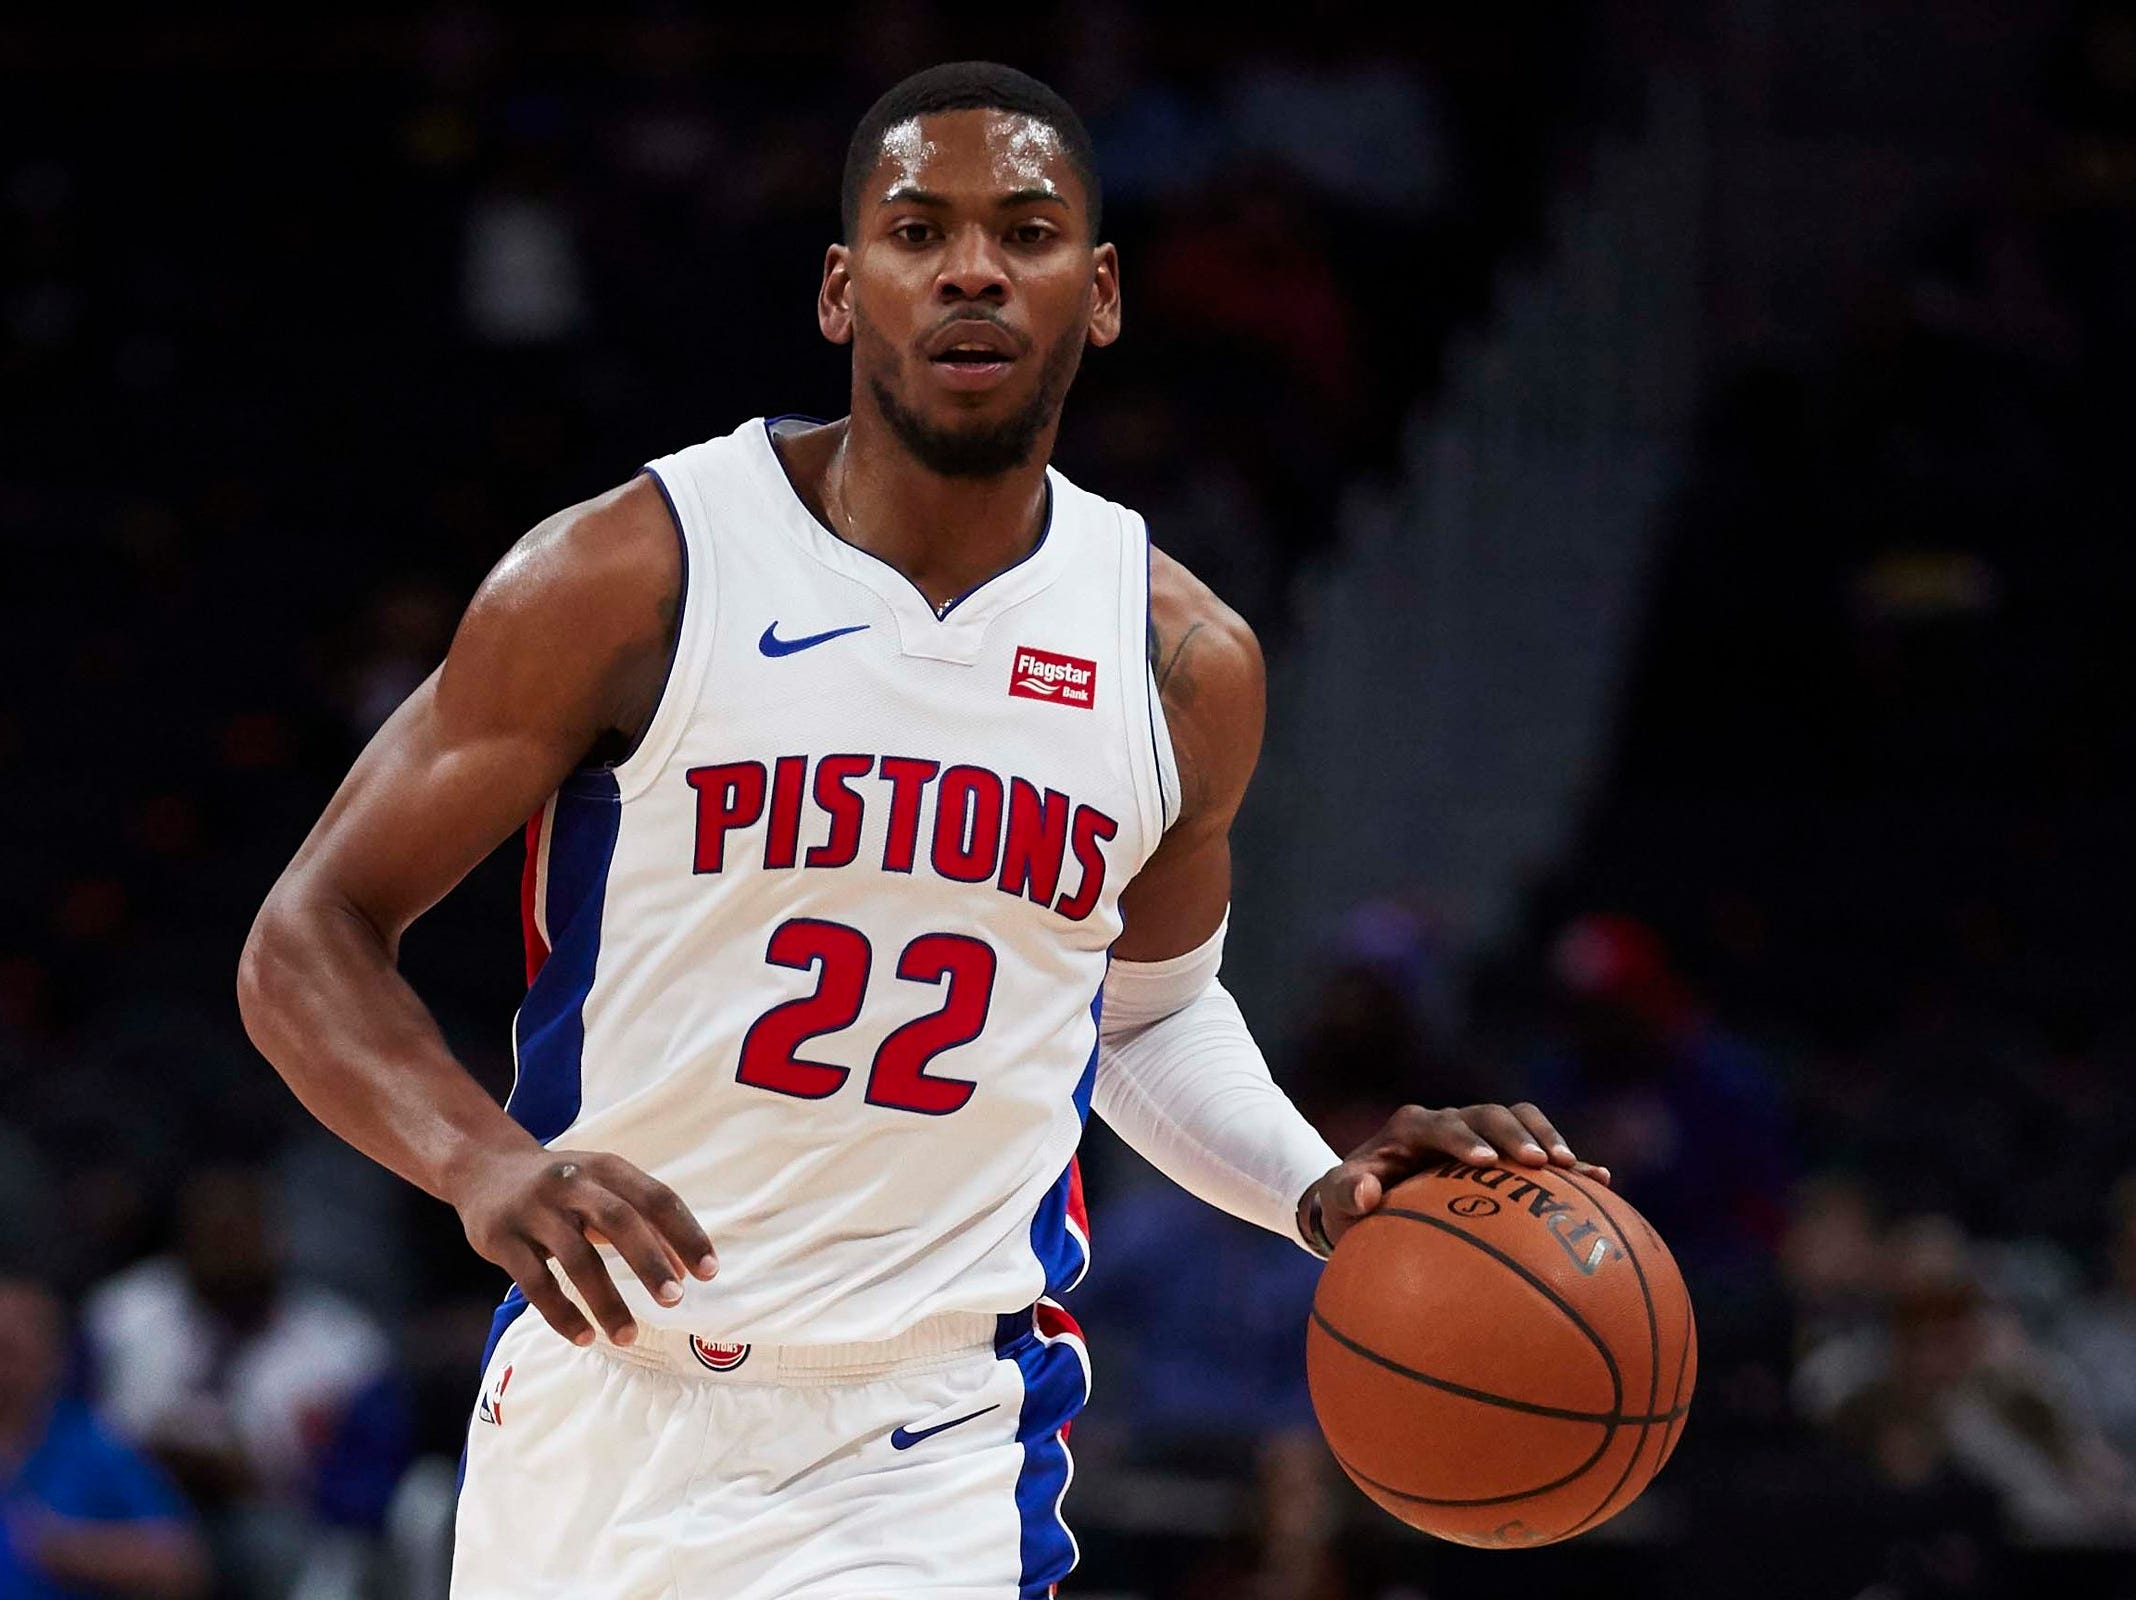 Detroit Pistons guard Glenn Robinson III (22) dribbles in the first half against the New York Knicks at Little Caesars Arena.